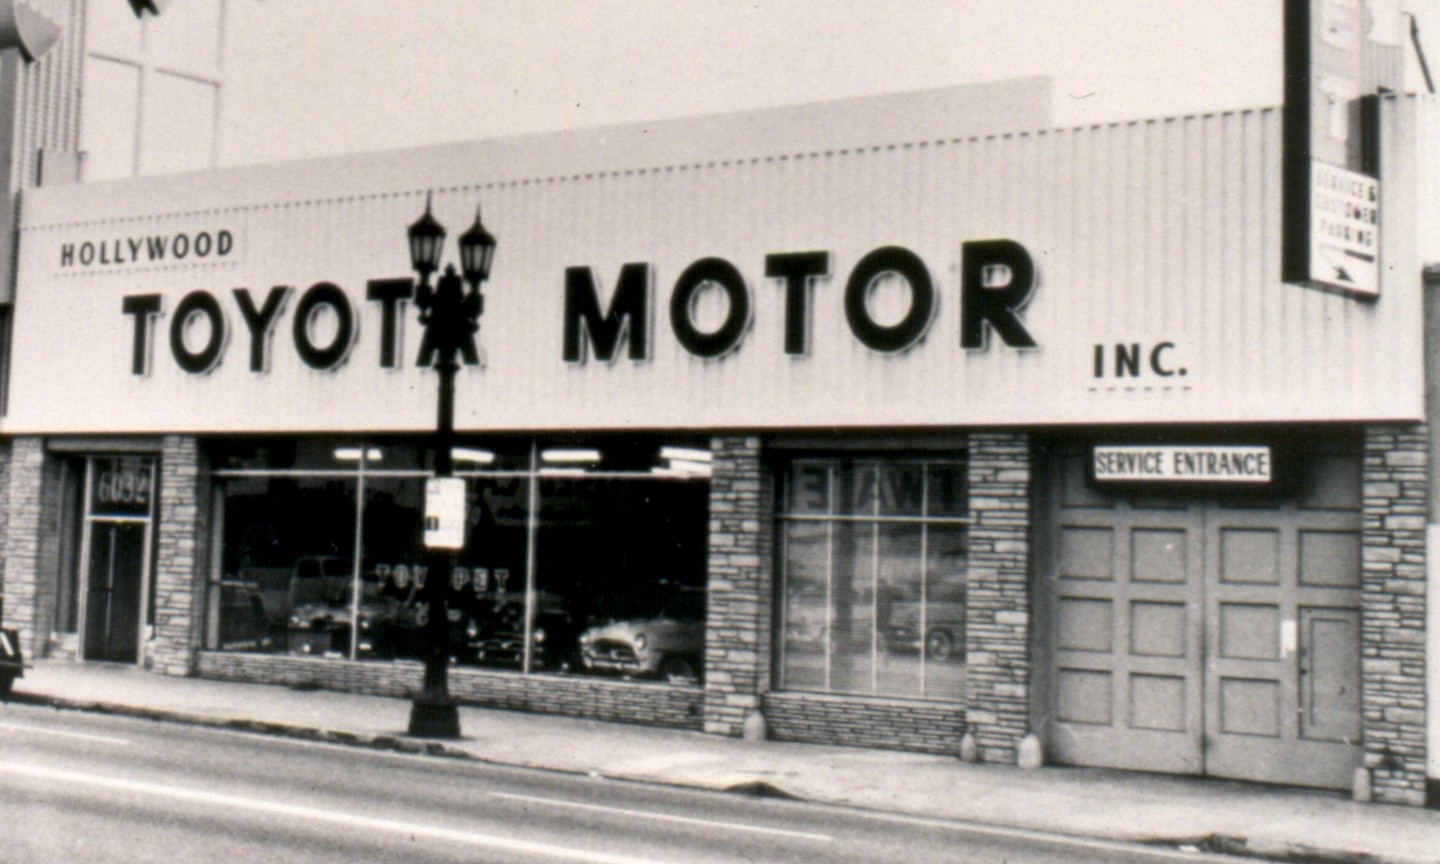 The History Of Toyota In Automotive Industry Is Rich With Innovation Evolution And Motorsports From Its First Model To Modern Day Achievements